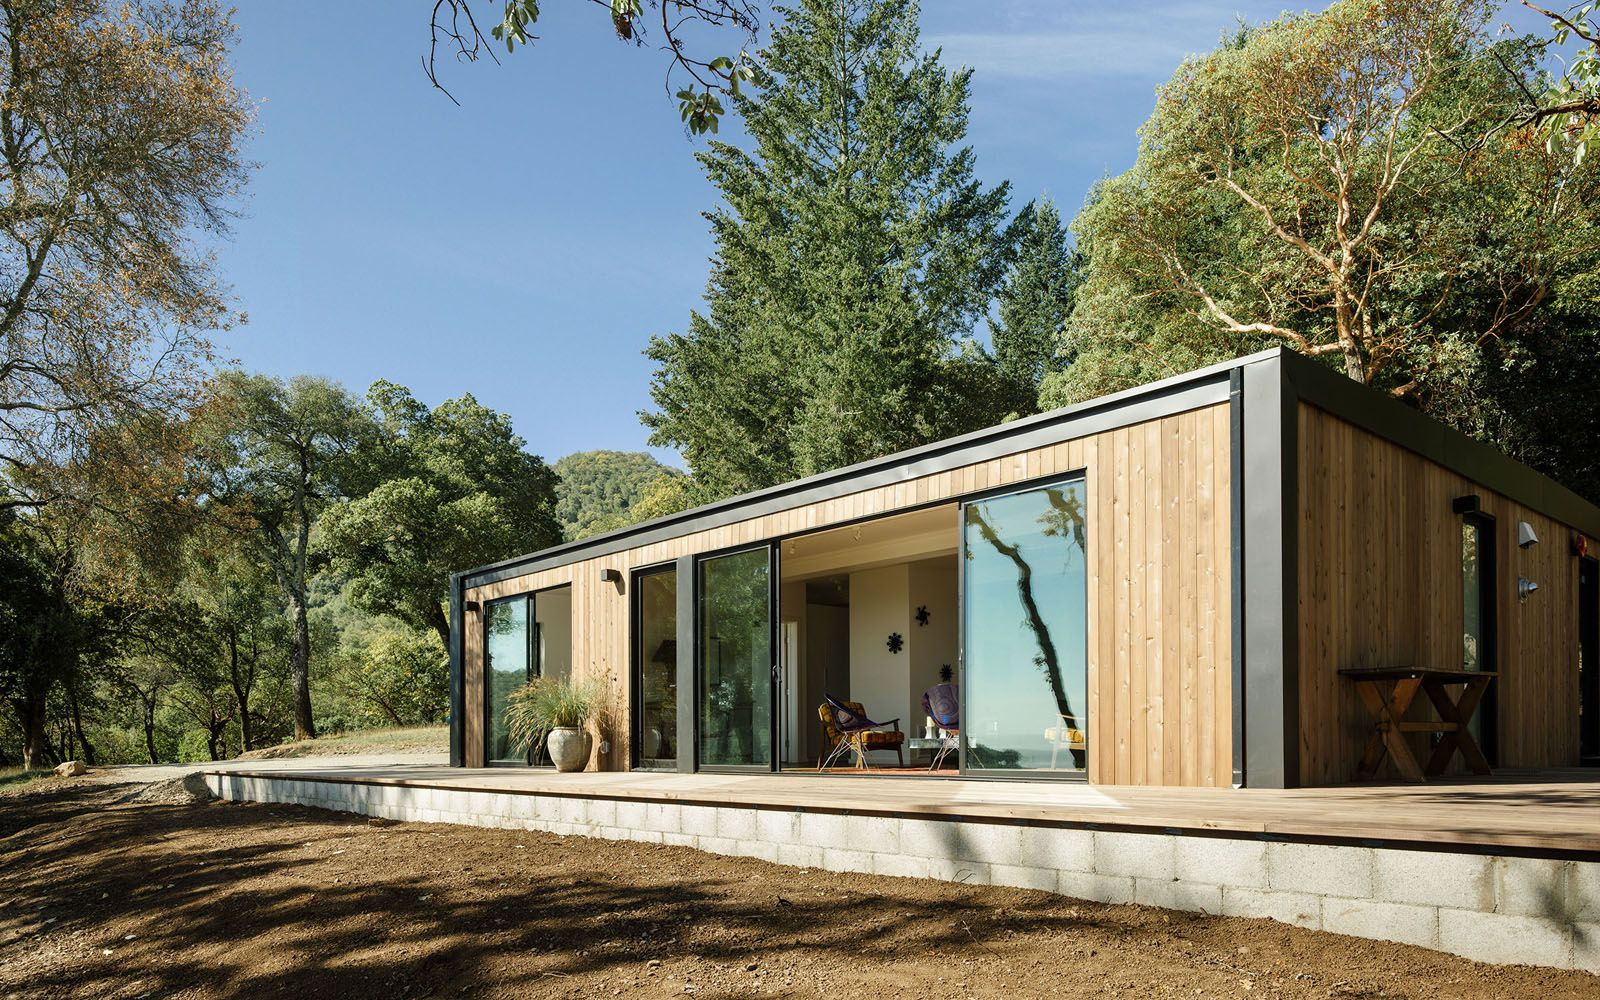 A modular home with vertical wooden panelling and two large windows, with a tree standing in front of the residence.